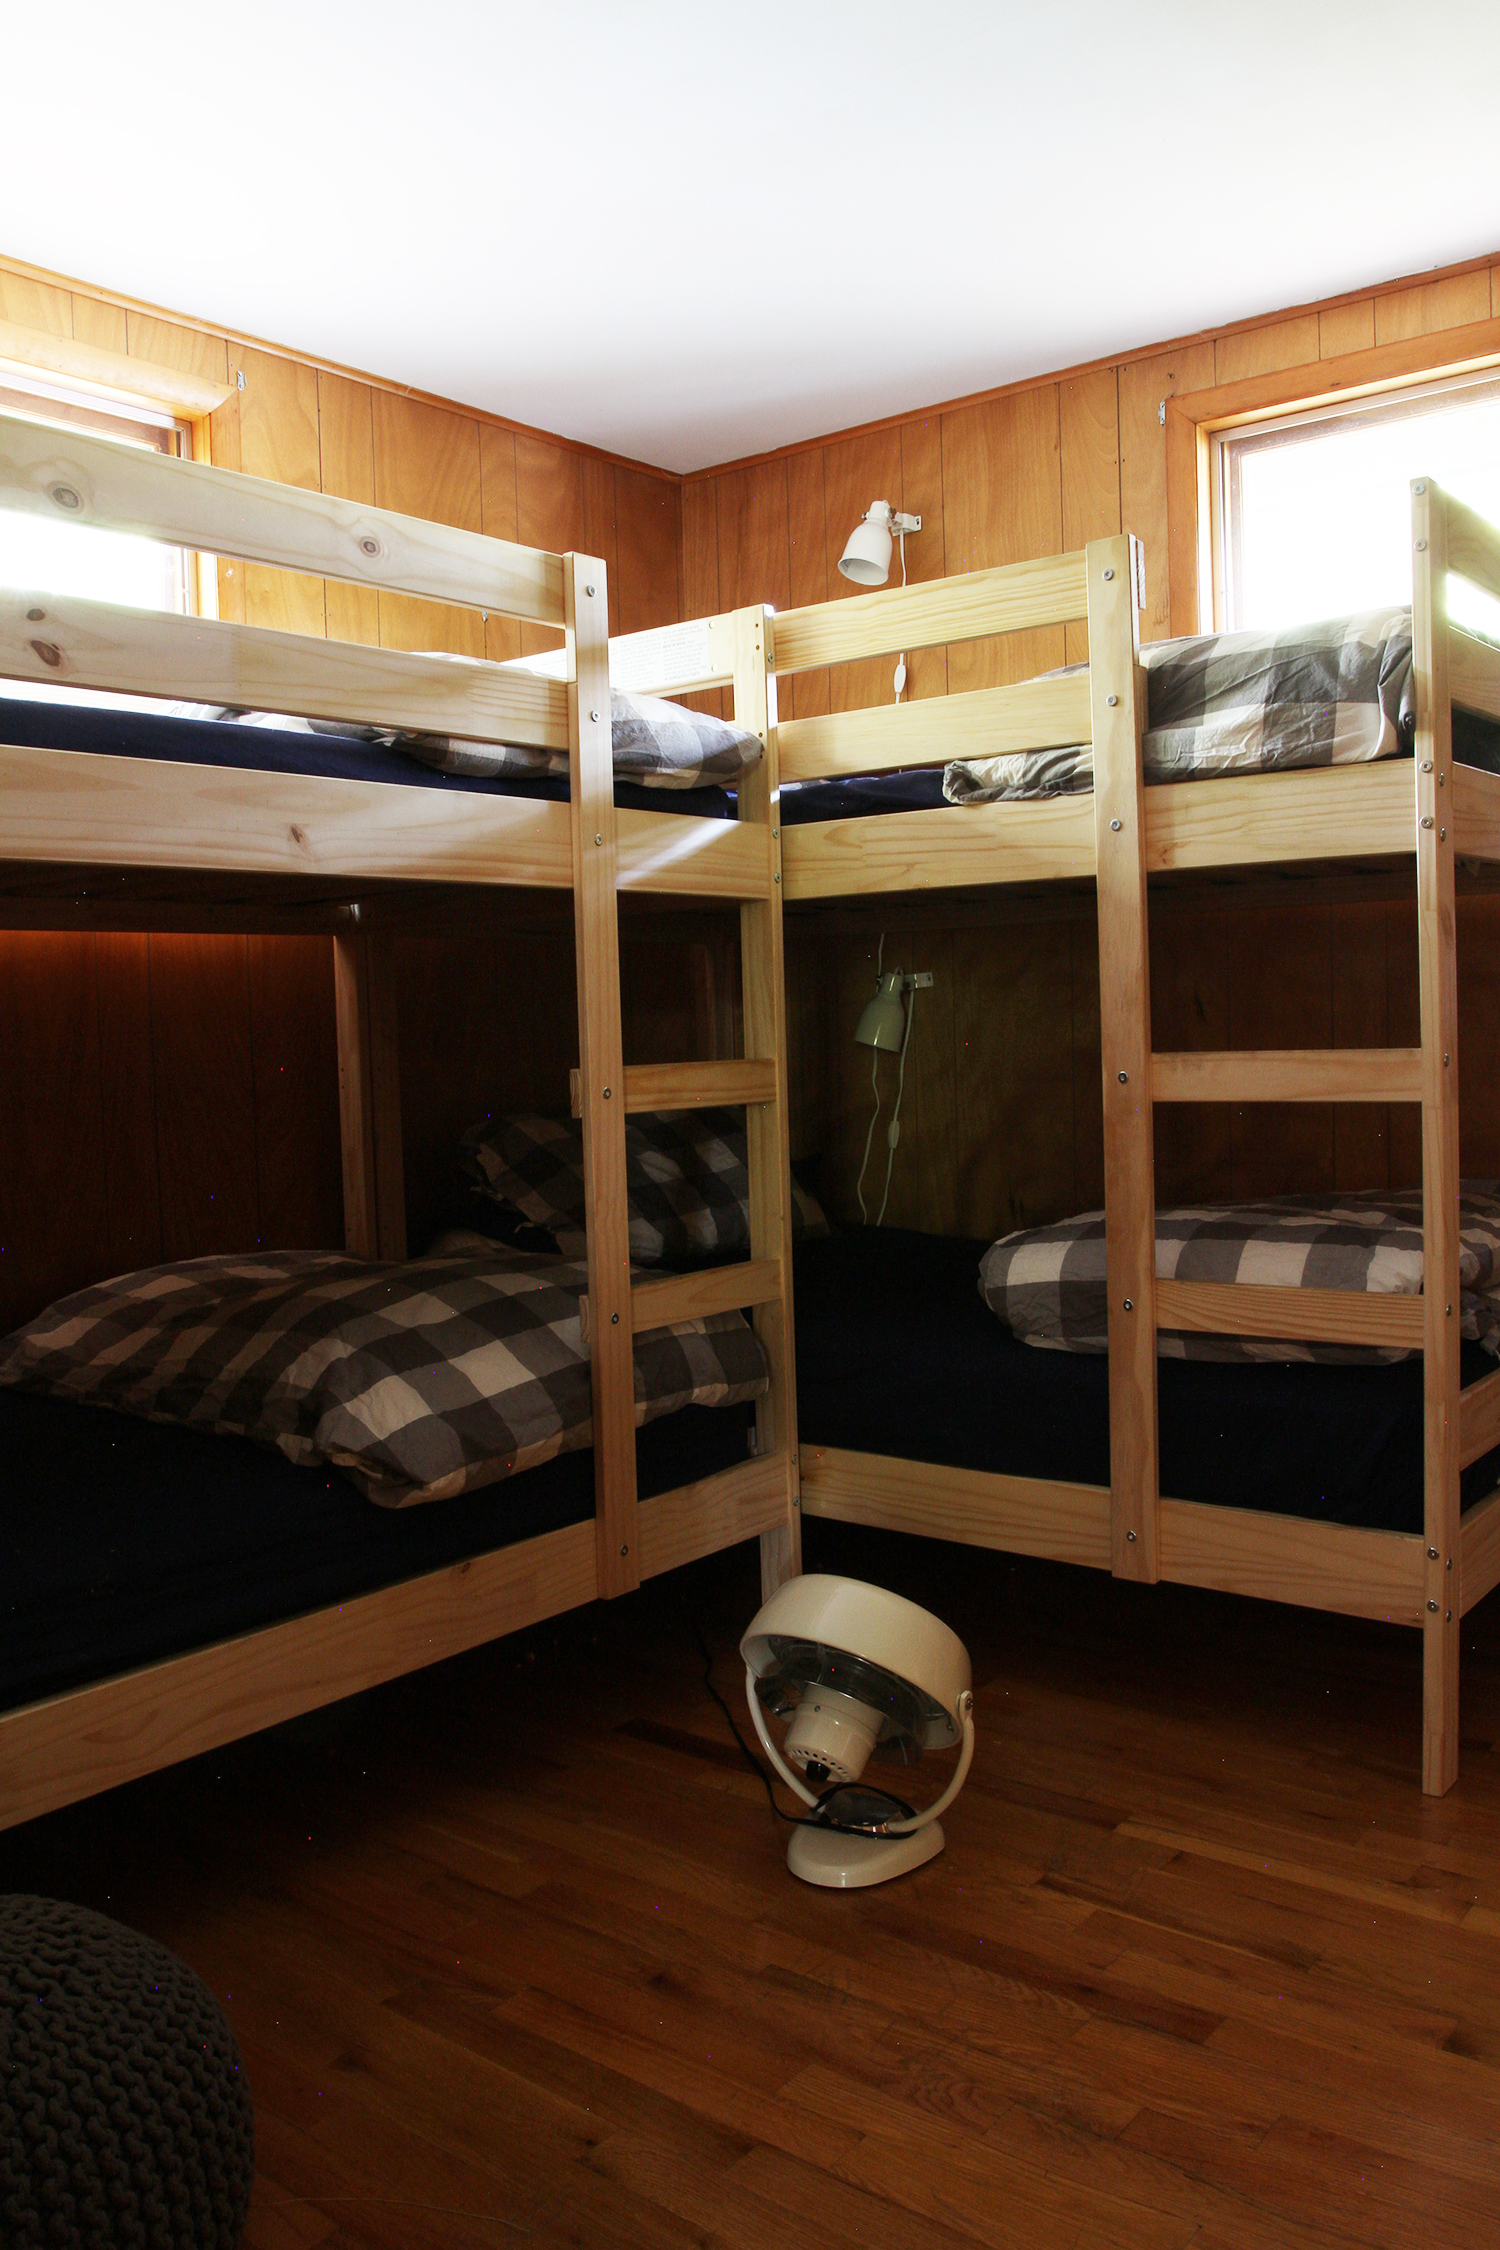 Design Plans for a Cabin Bunkroom | Deuce Cities Henhouse